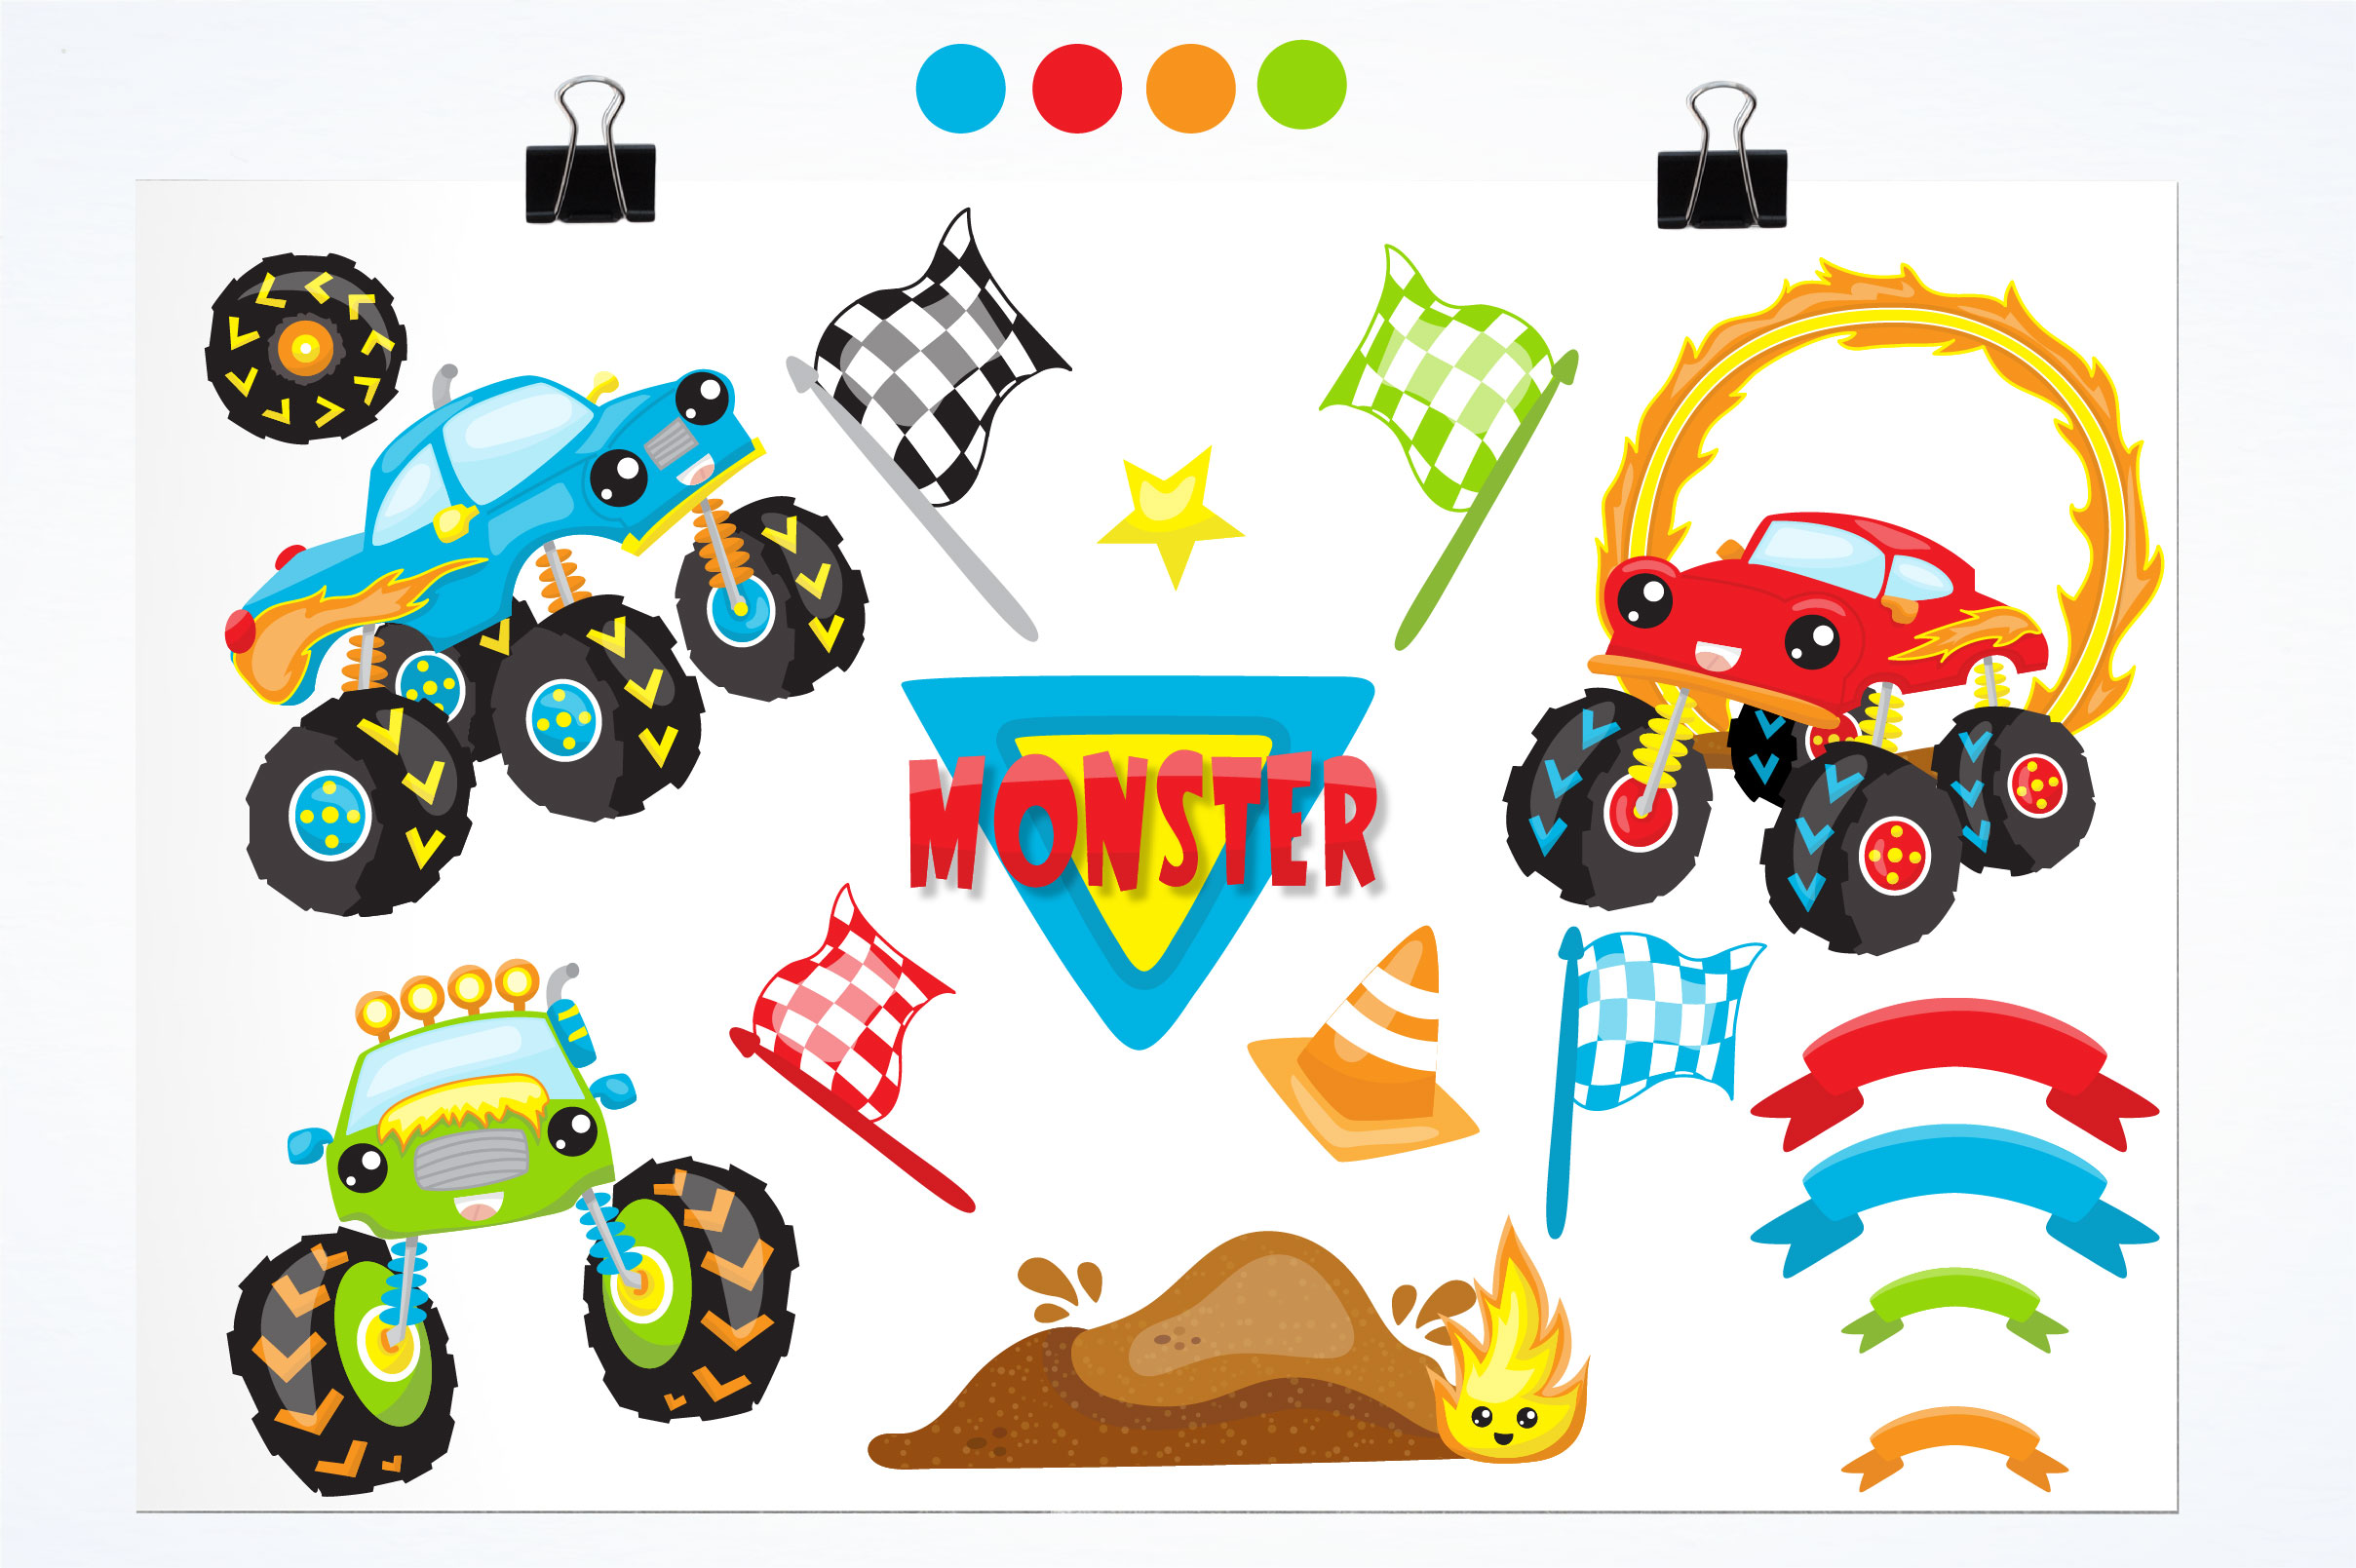 Monster truck graphics and illustrations example image 2